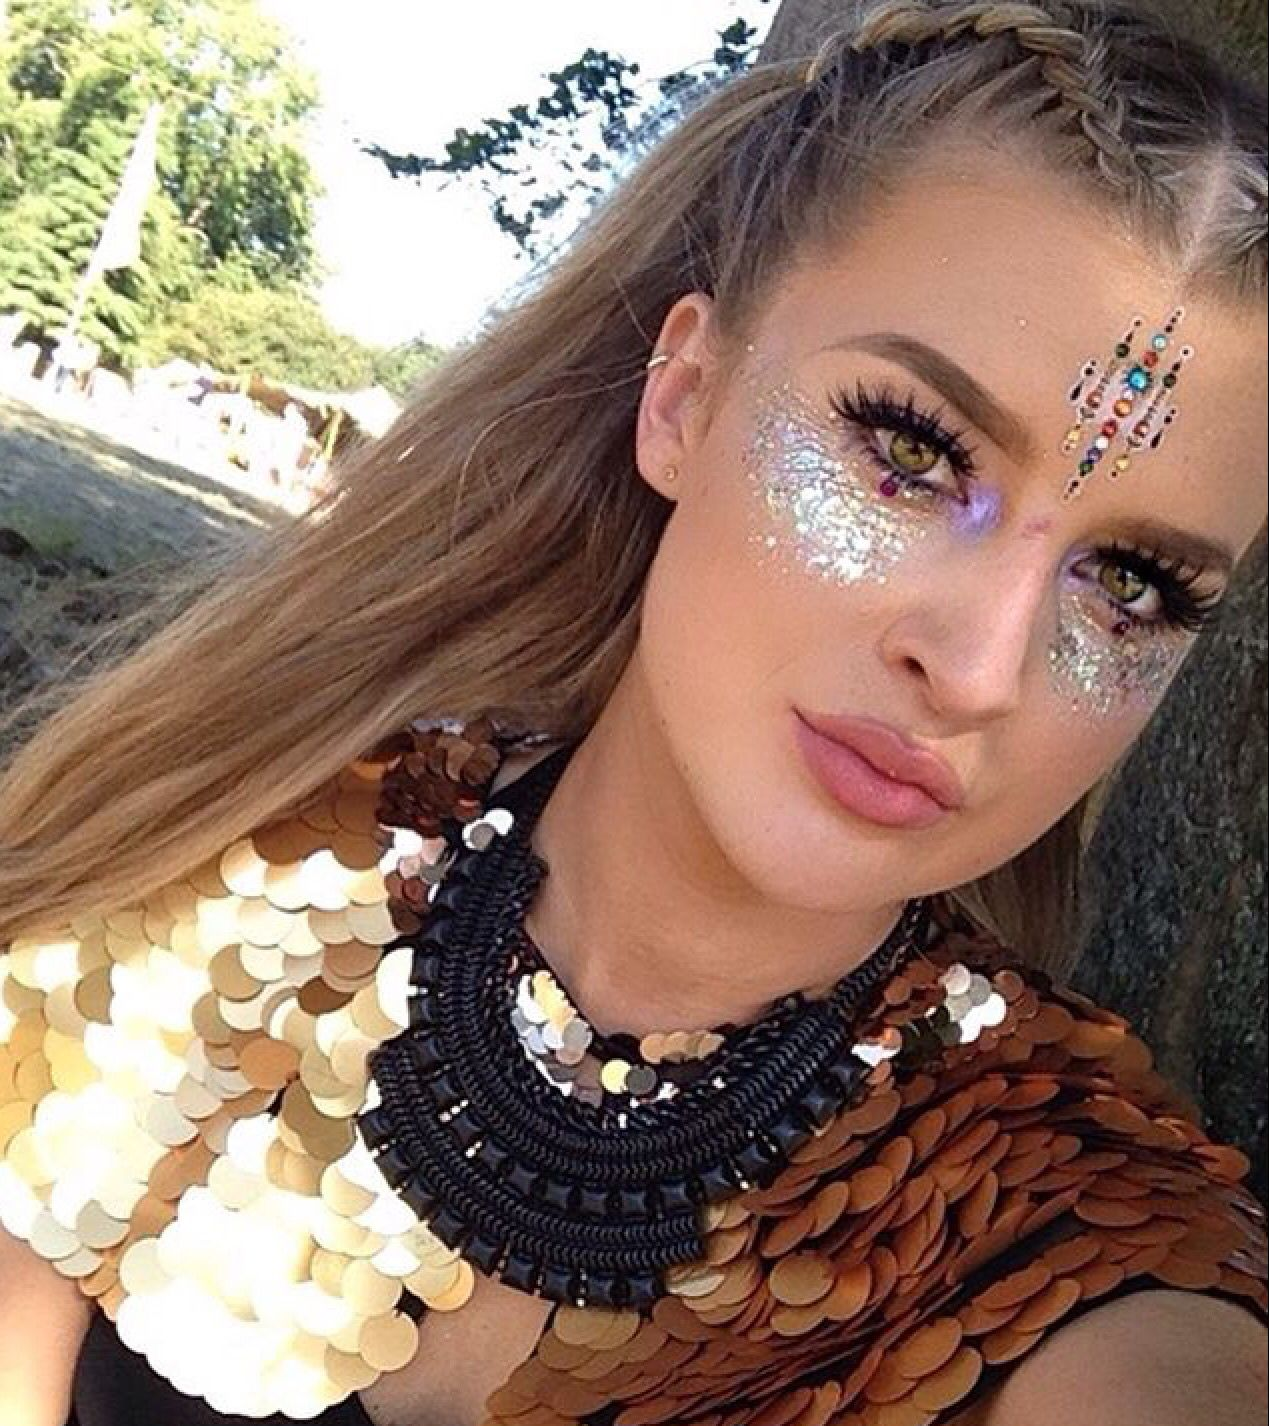 Sparkle shine glitter hair and makeup feathers shimmer - Hair Makeup Festival Glitter And Jewels